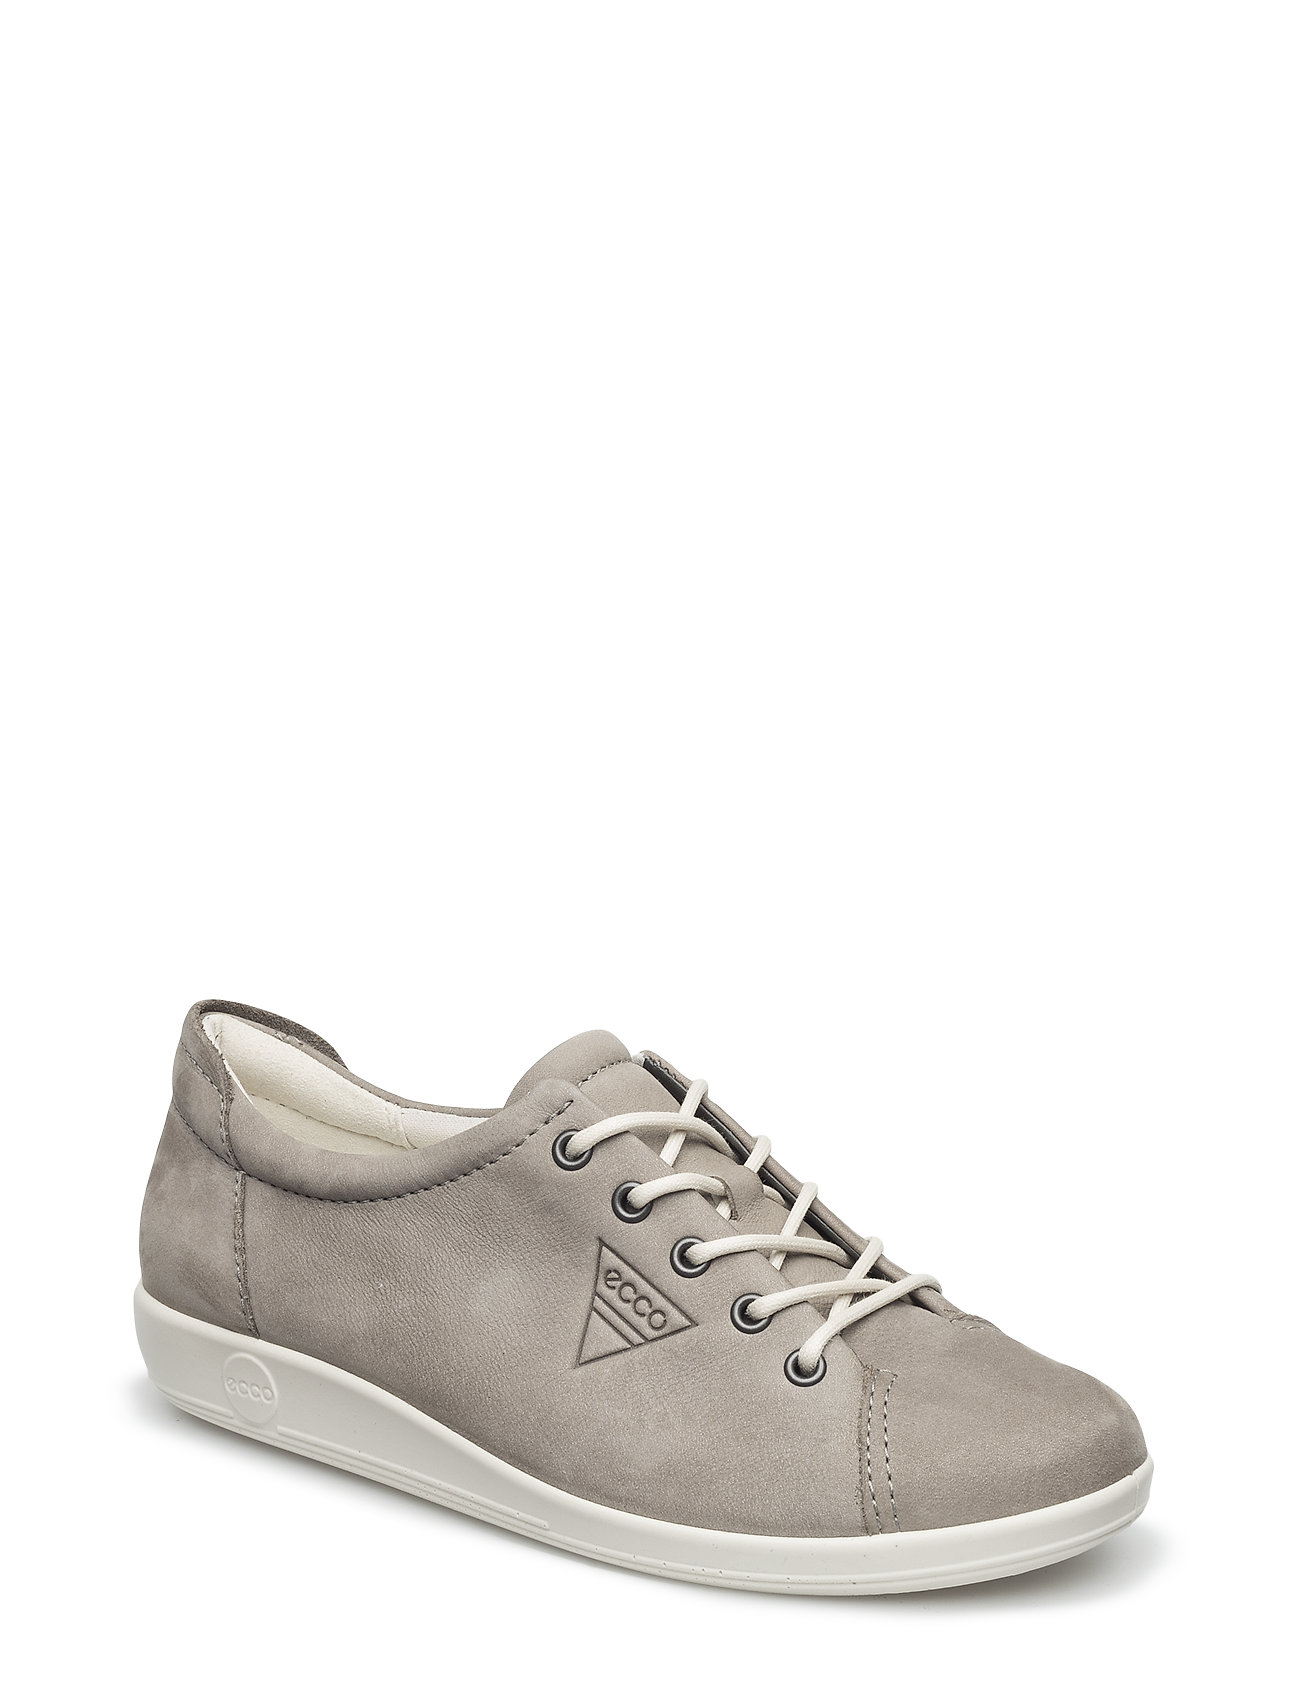 Image of Soft 2.0 Low-top Sneakers Grå ECCO (3298292601)